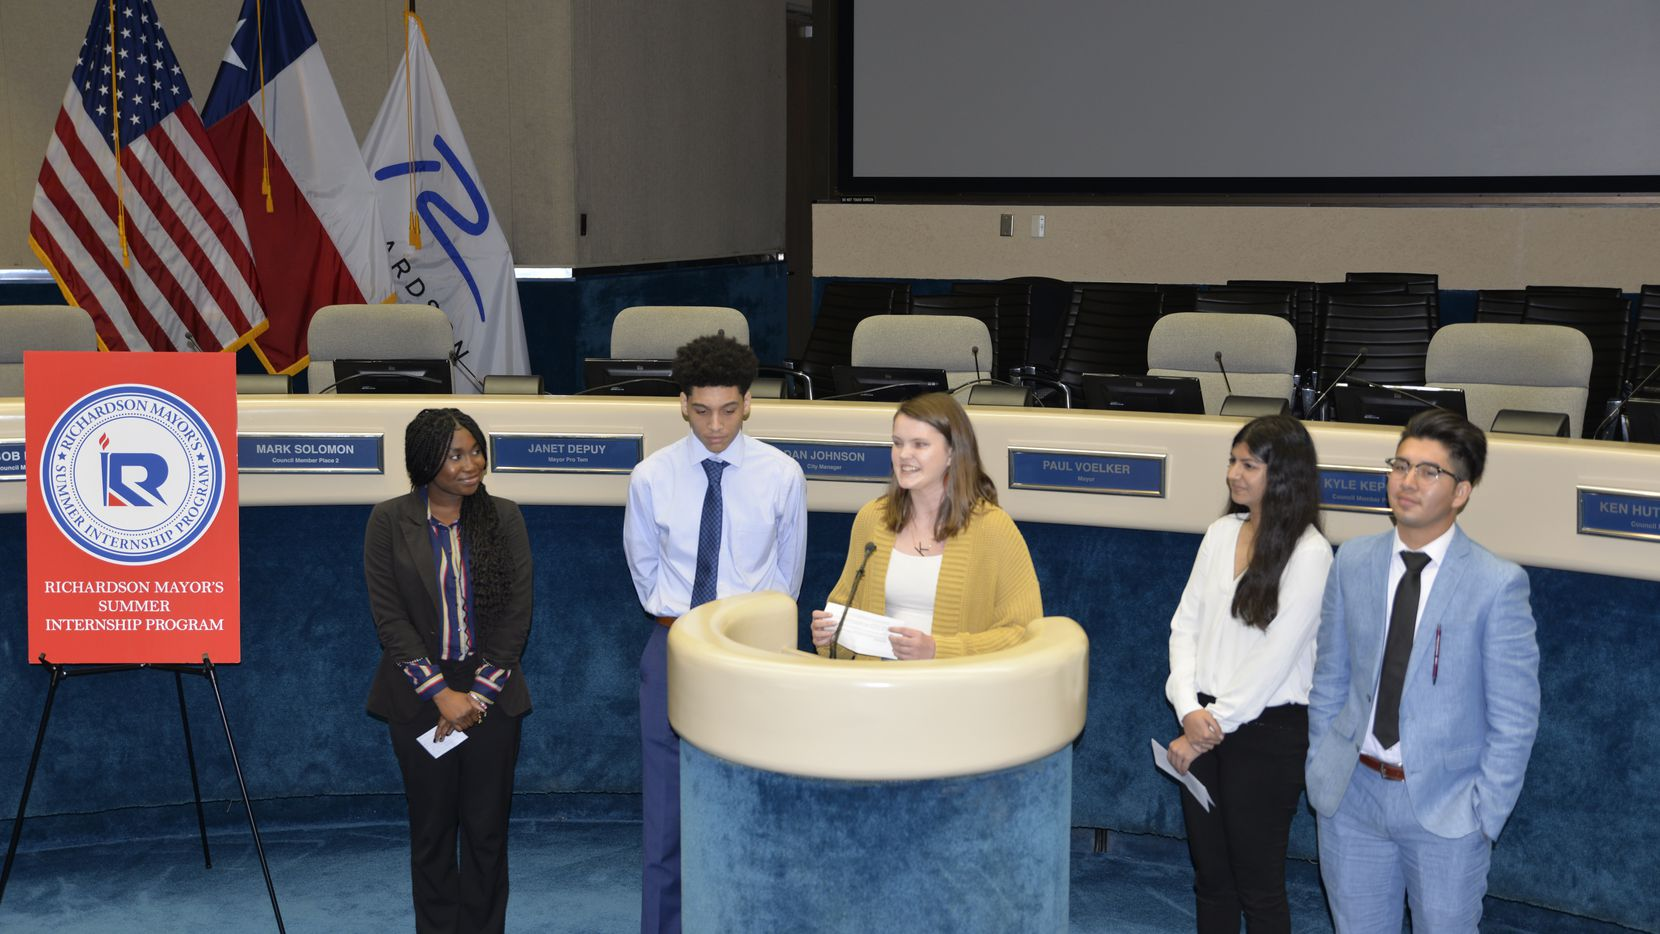 Students who participated in the Richardson Mayor's Summer Internship program in 2019 attended an event at the Richardson council chambers Tuesday, Feb. 11, 2020, to kick off the 2020 program.